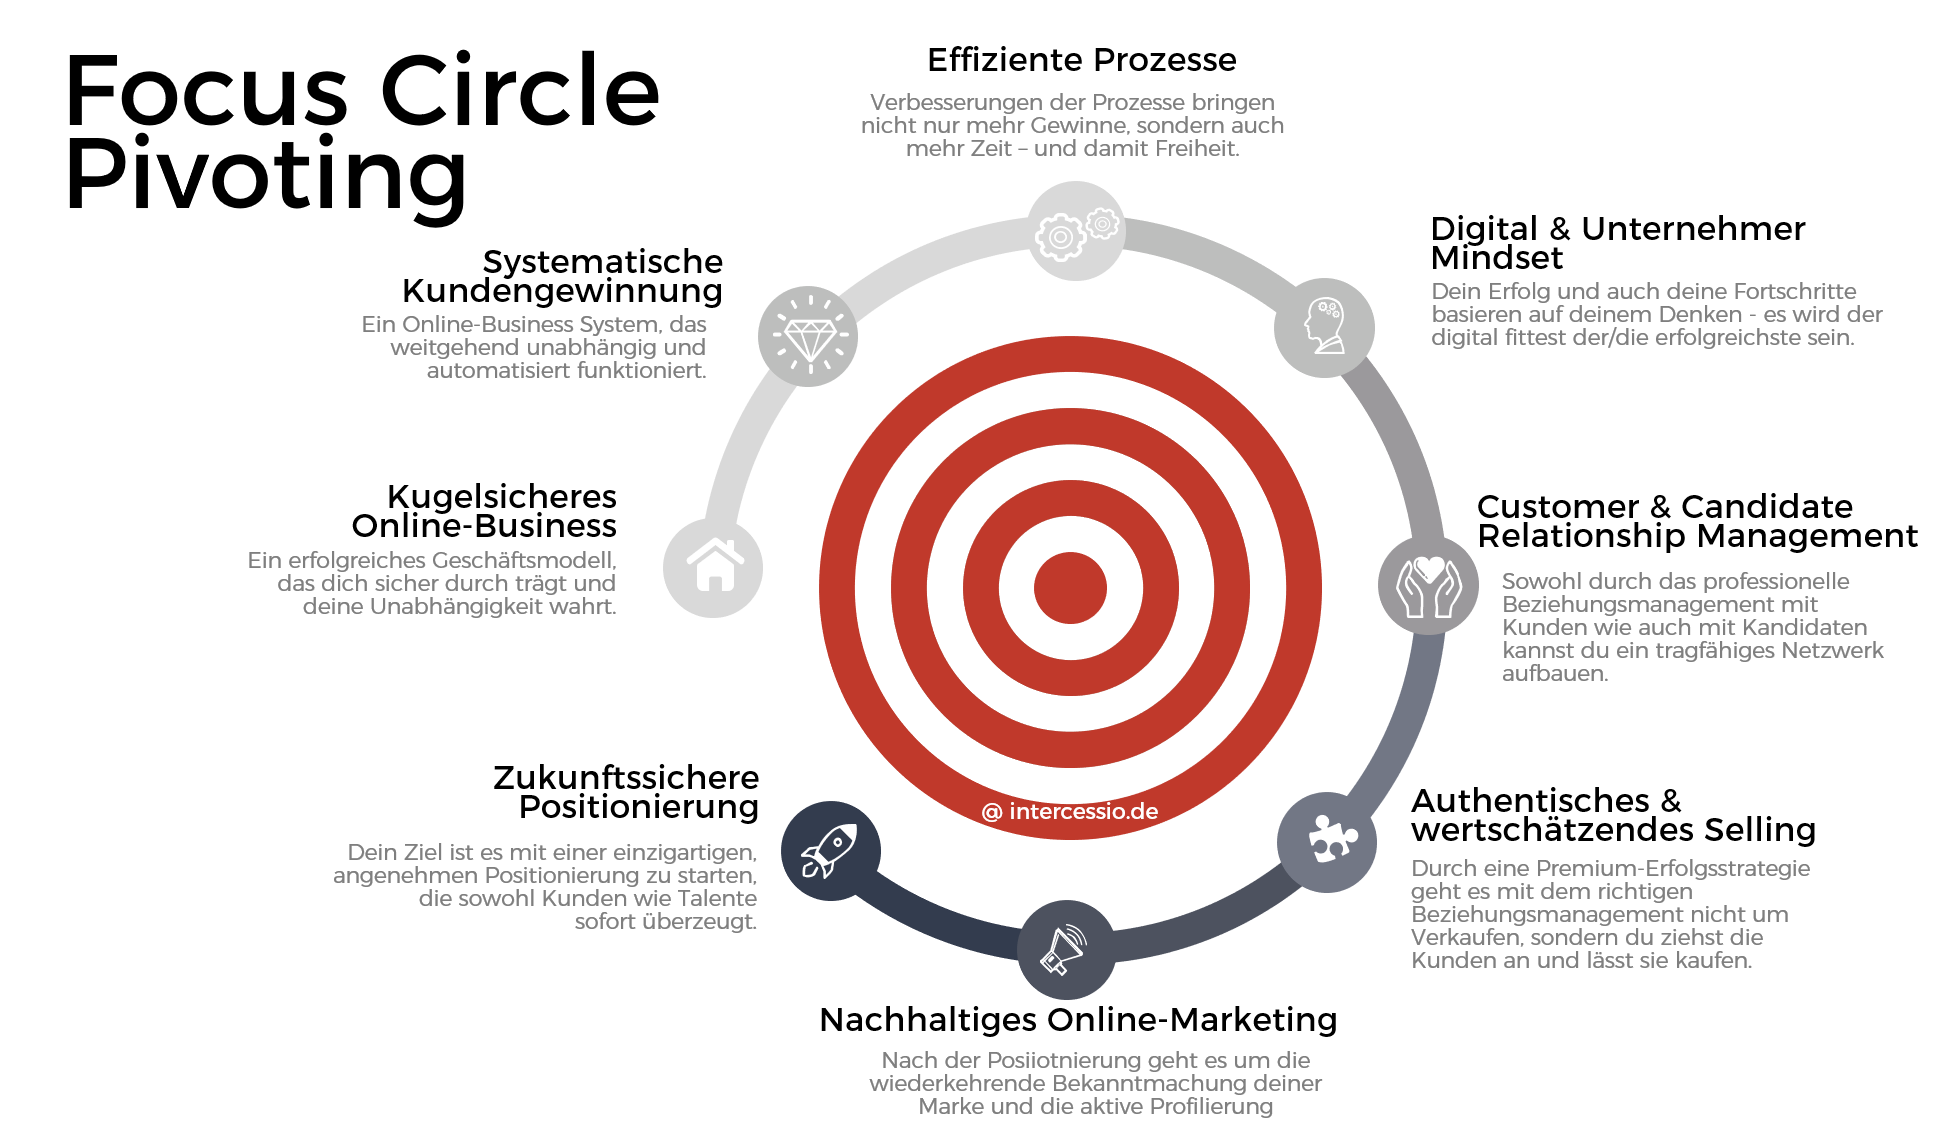 Focus Circle Pivoting by Intercessio - Recruitment Online-Business